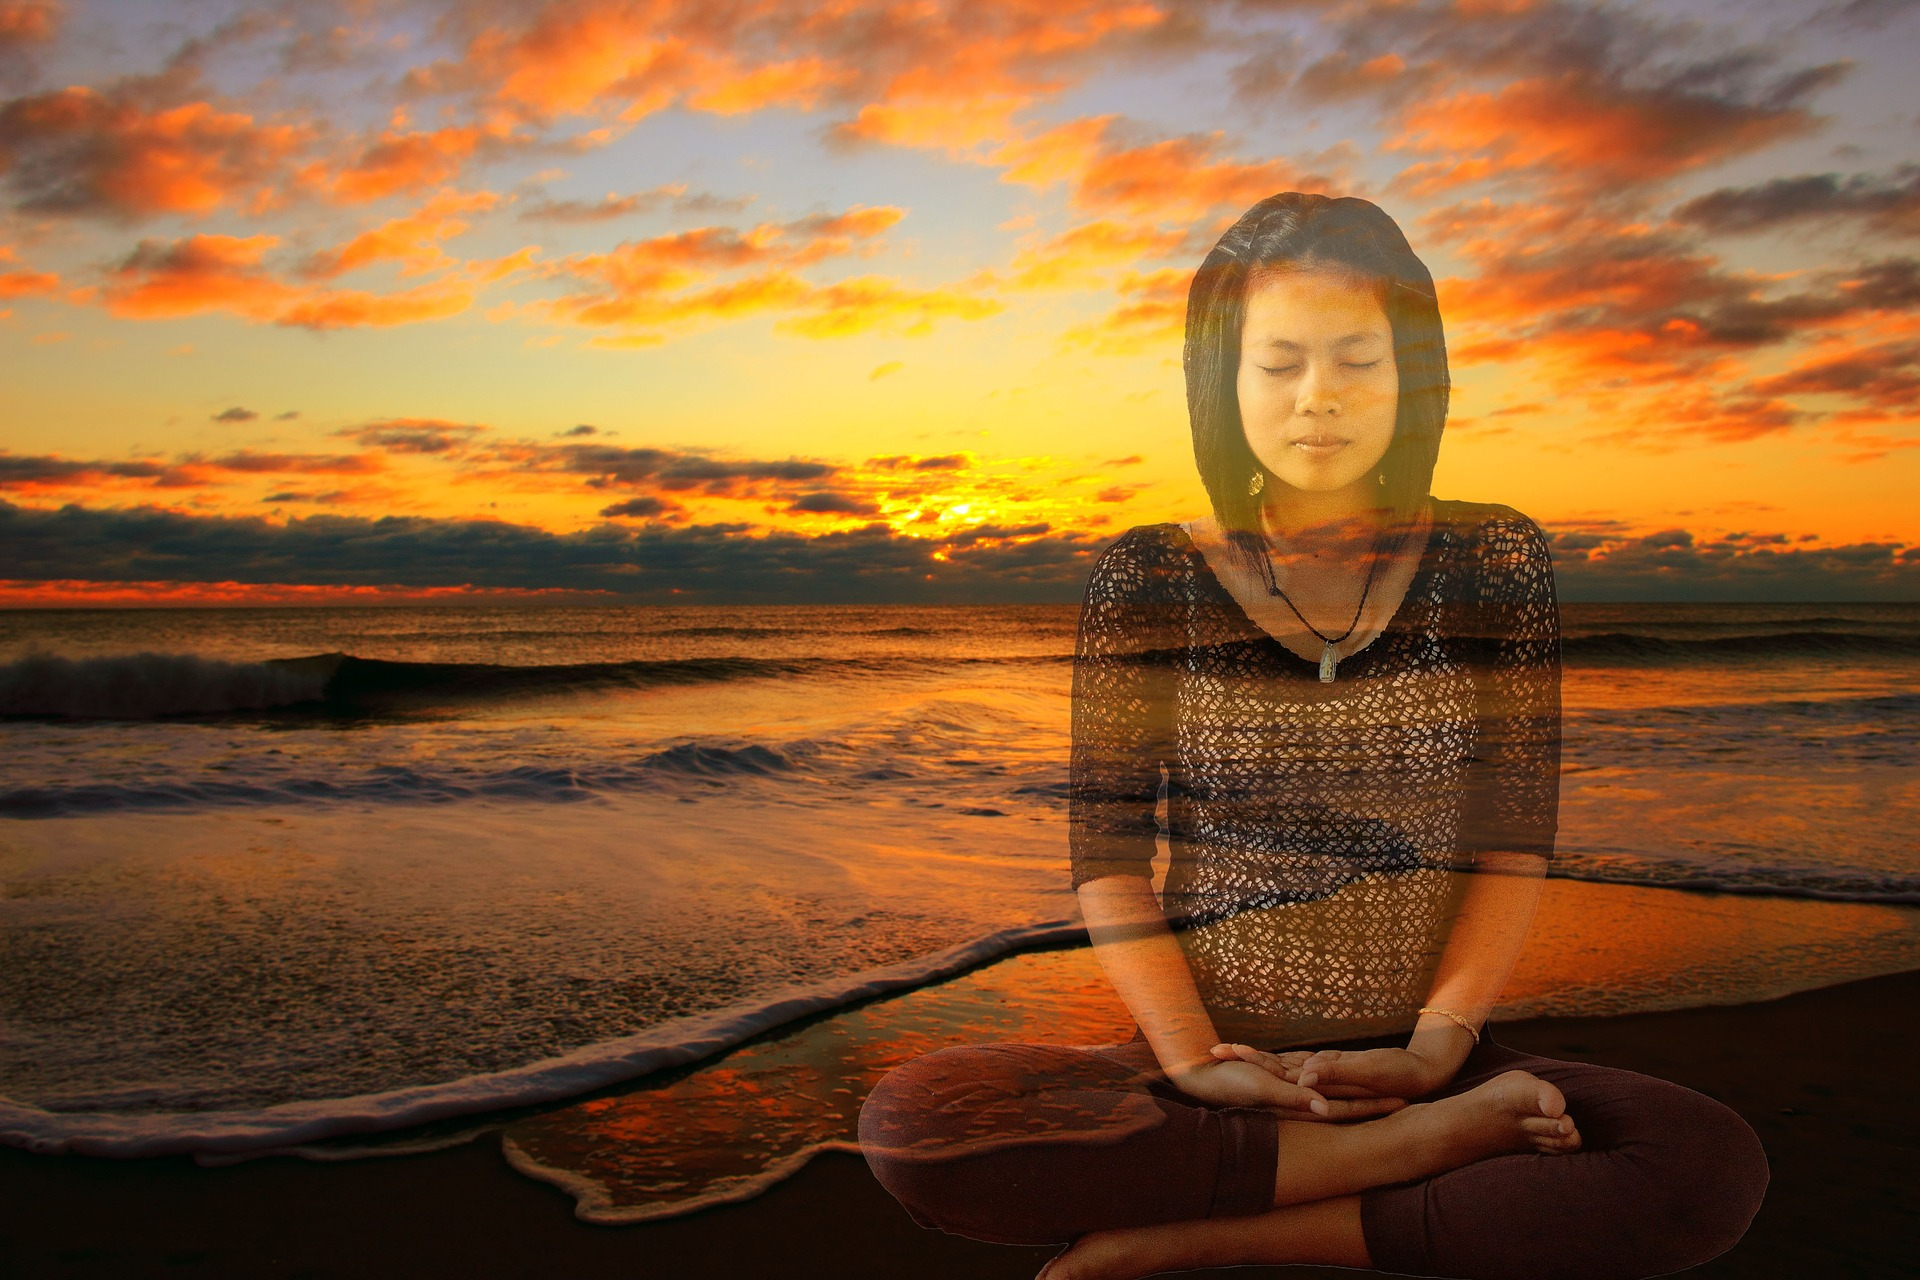 Woman meditating in the sunset